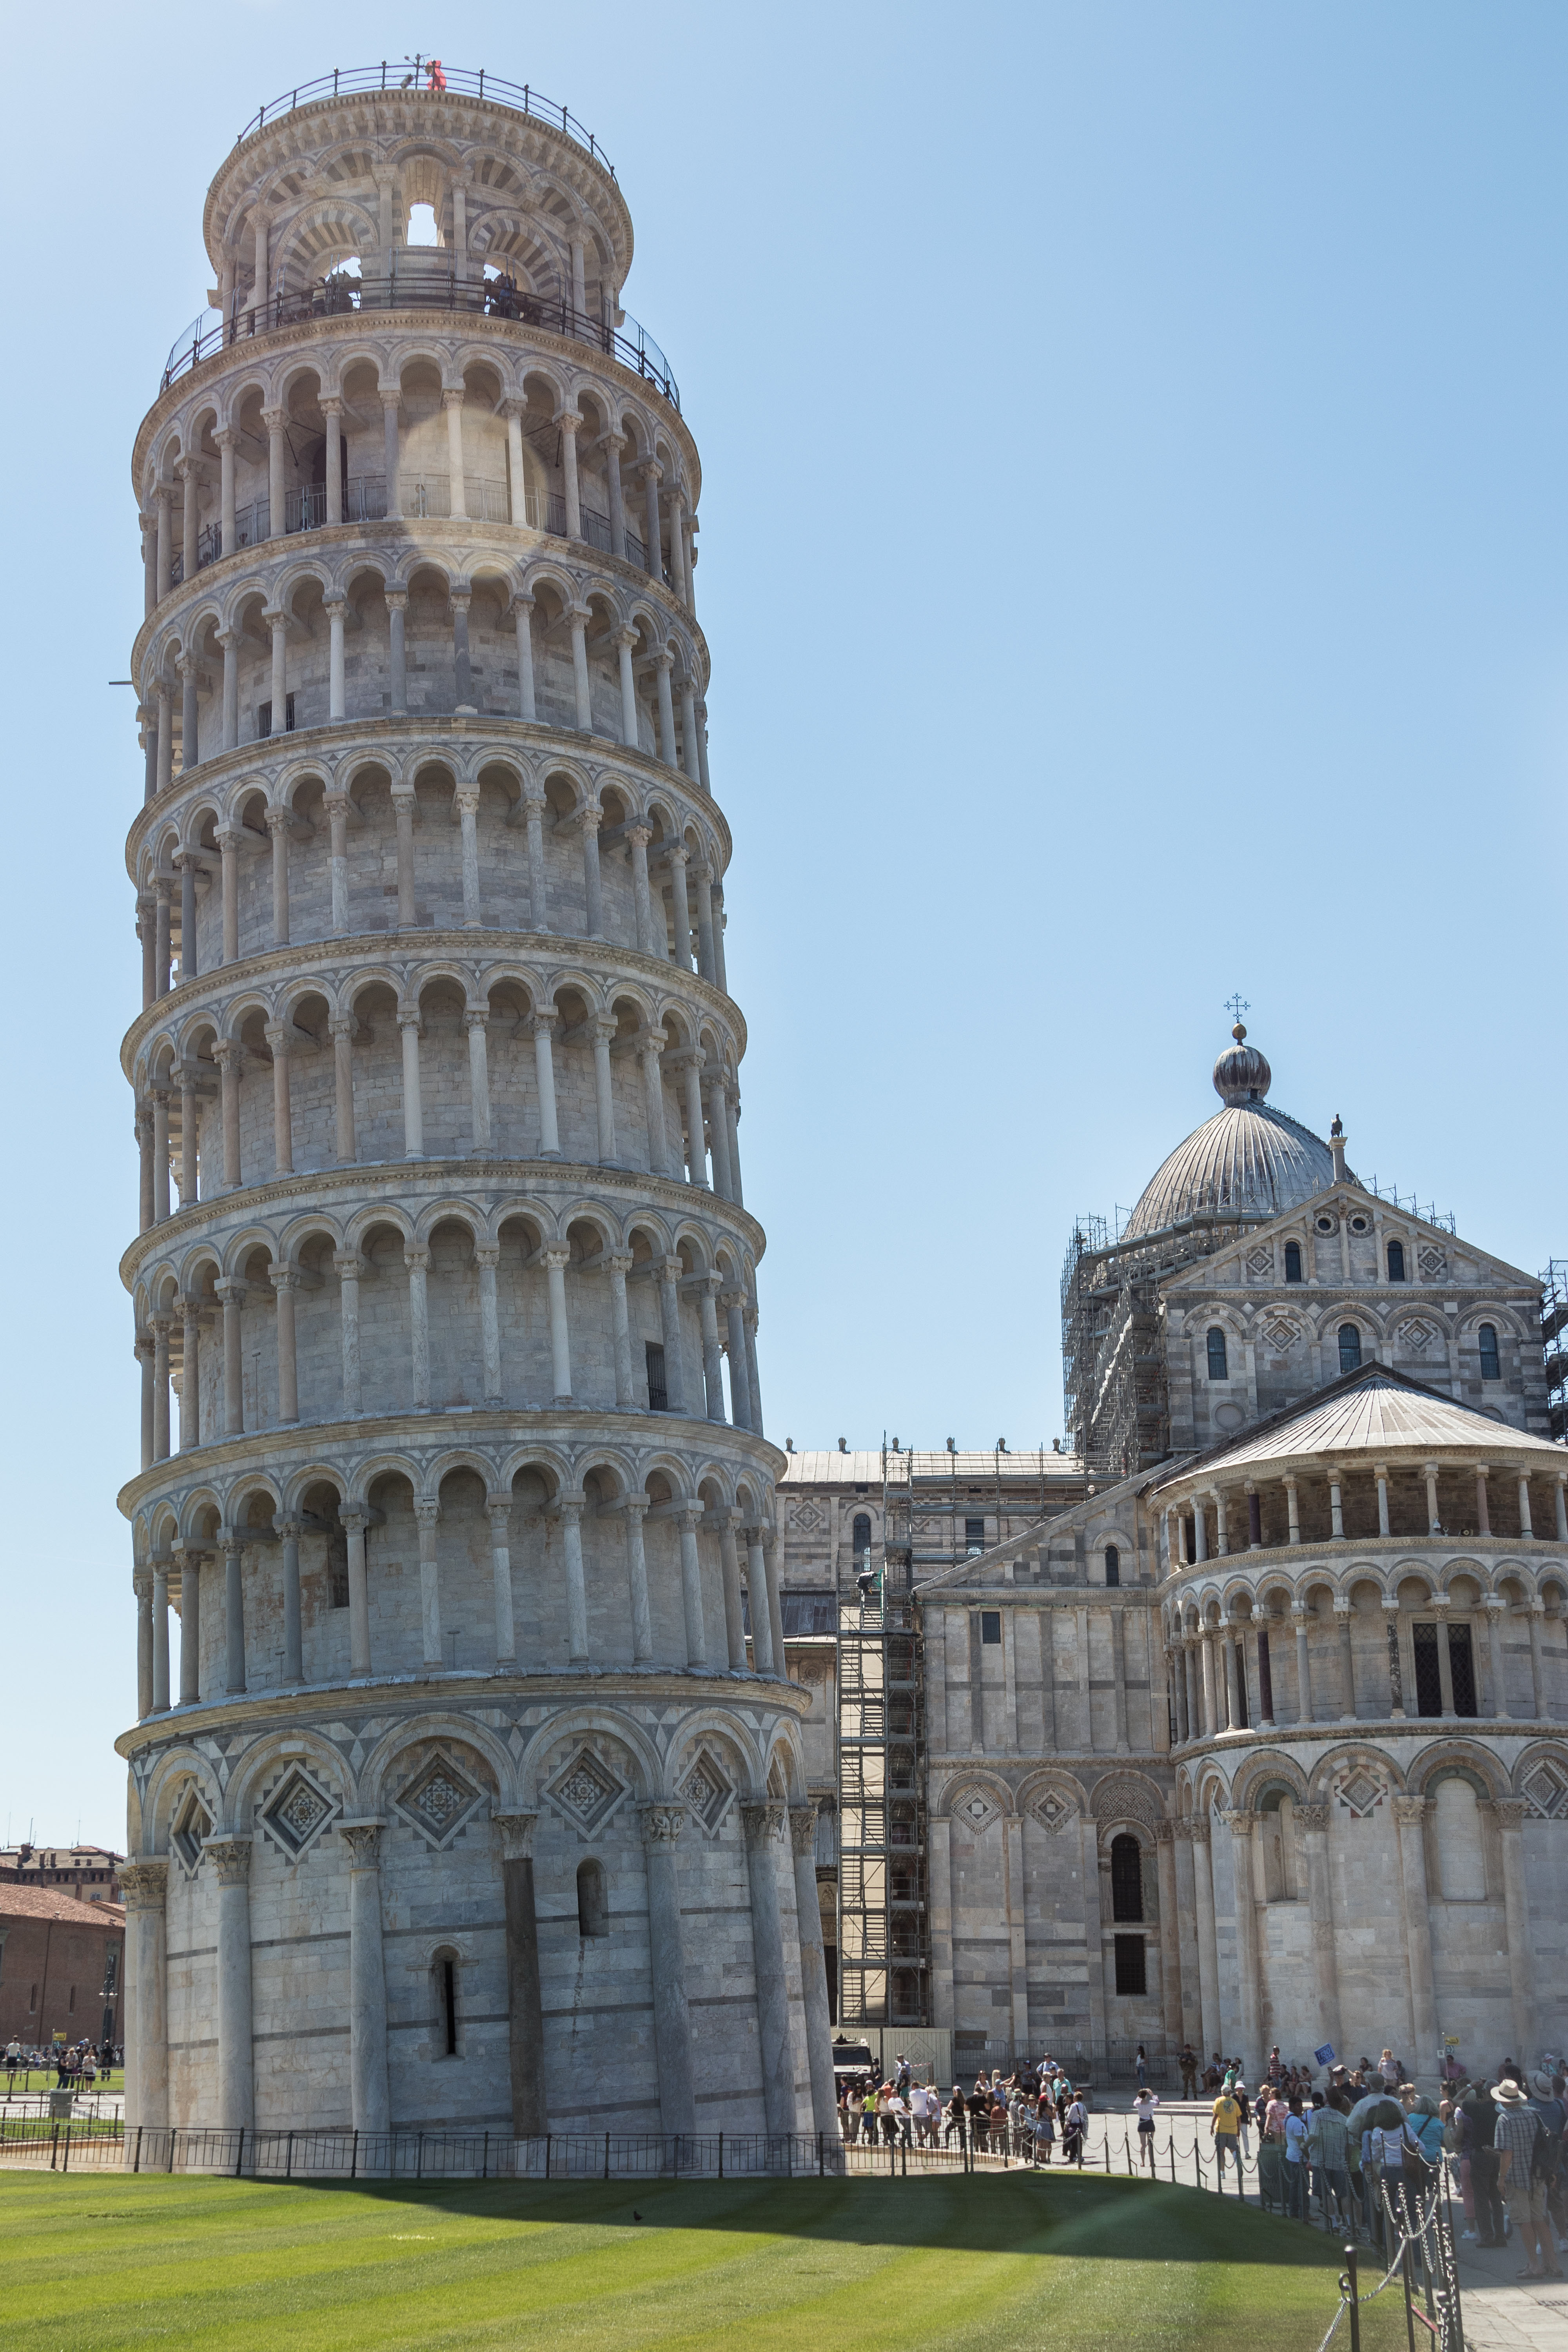 Mediterranean Cruise - Pisa, Italy | https://www.roseclearfield.com